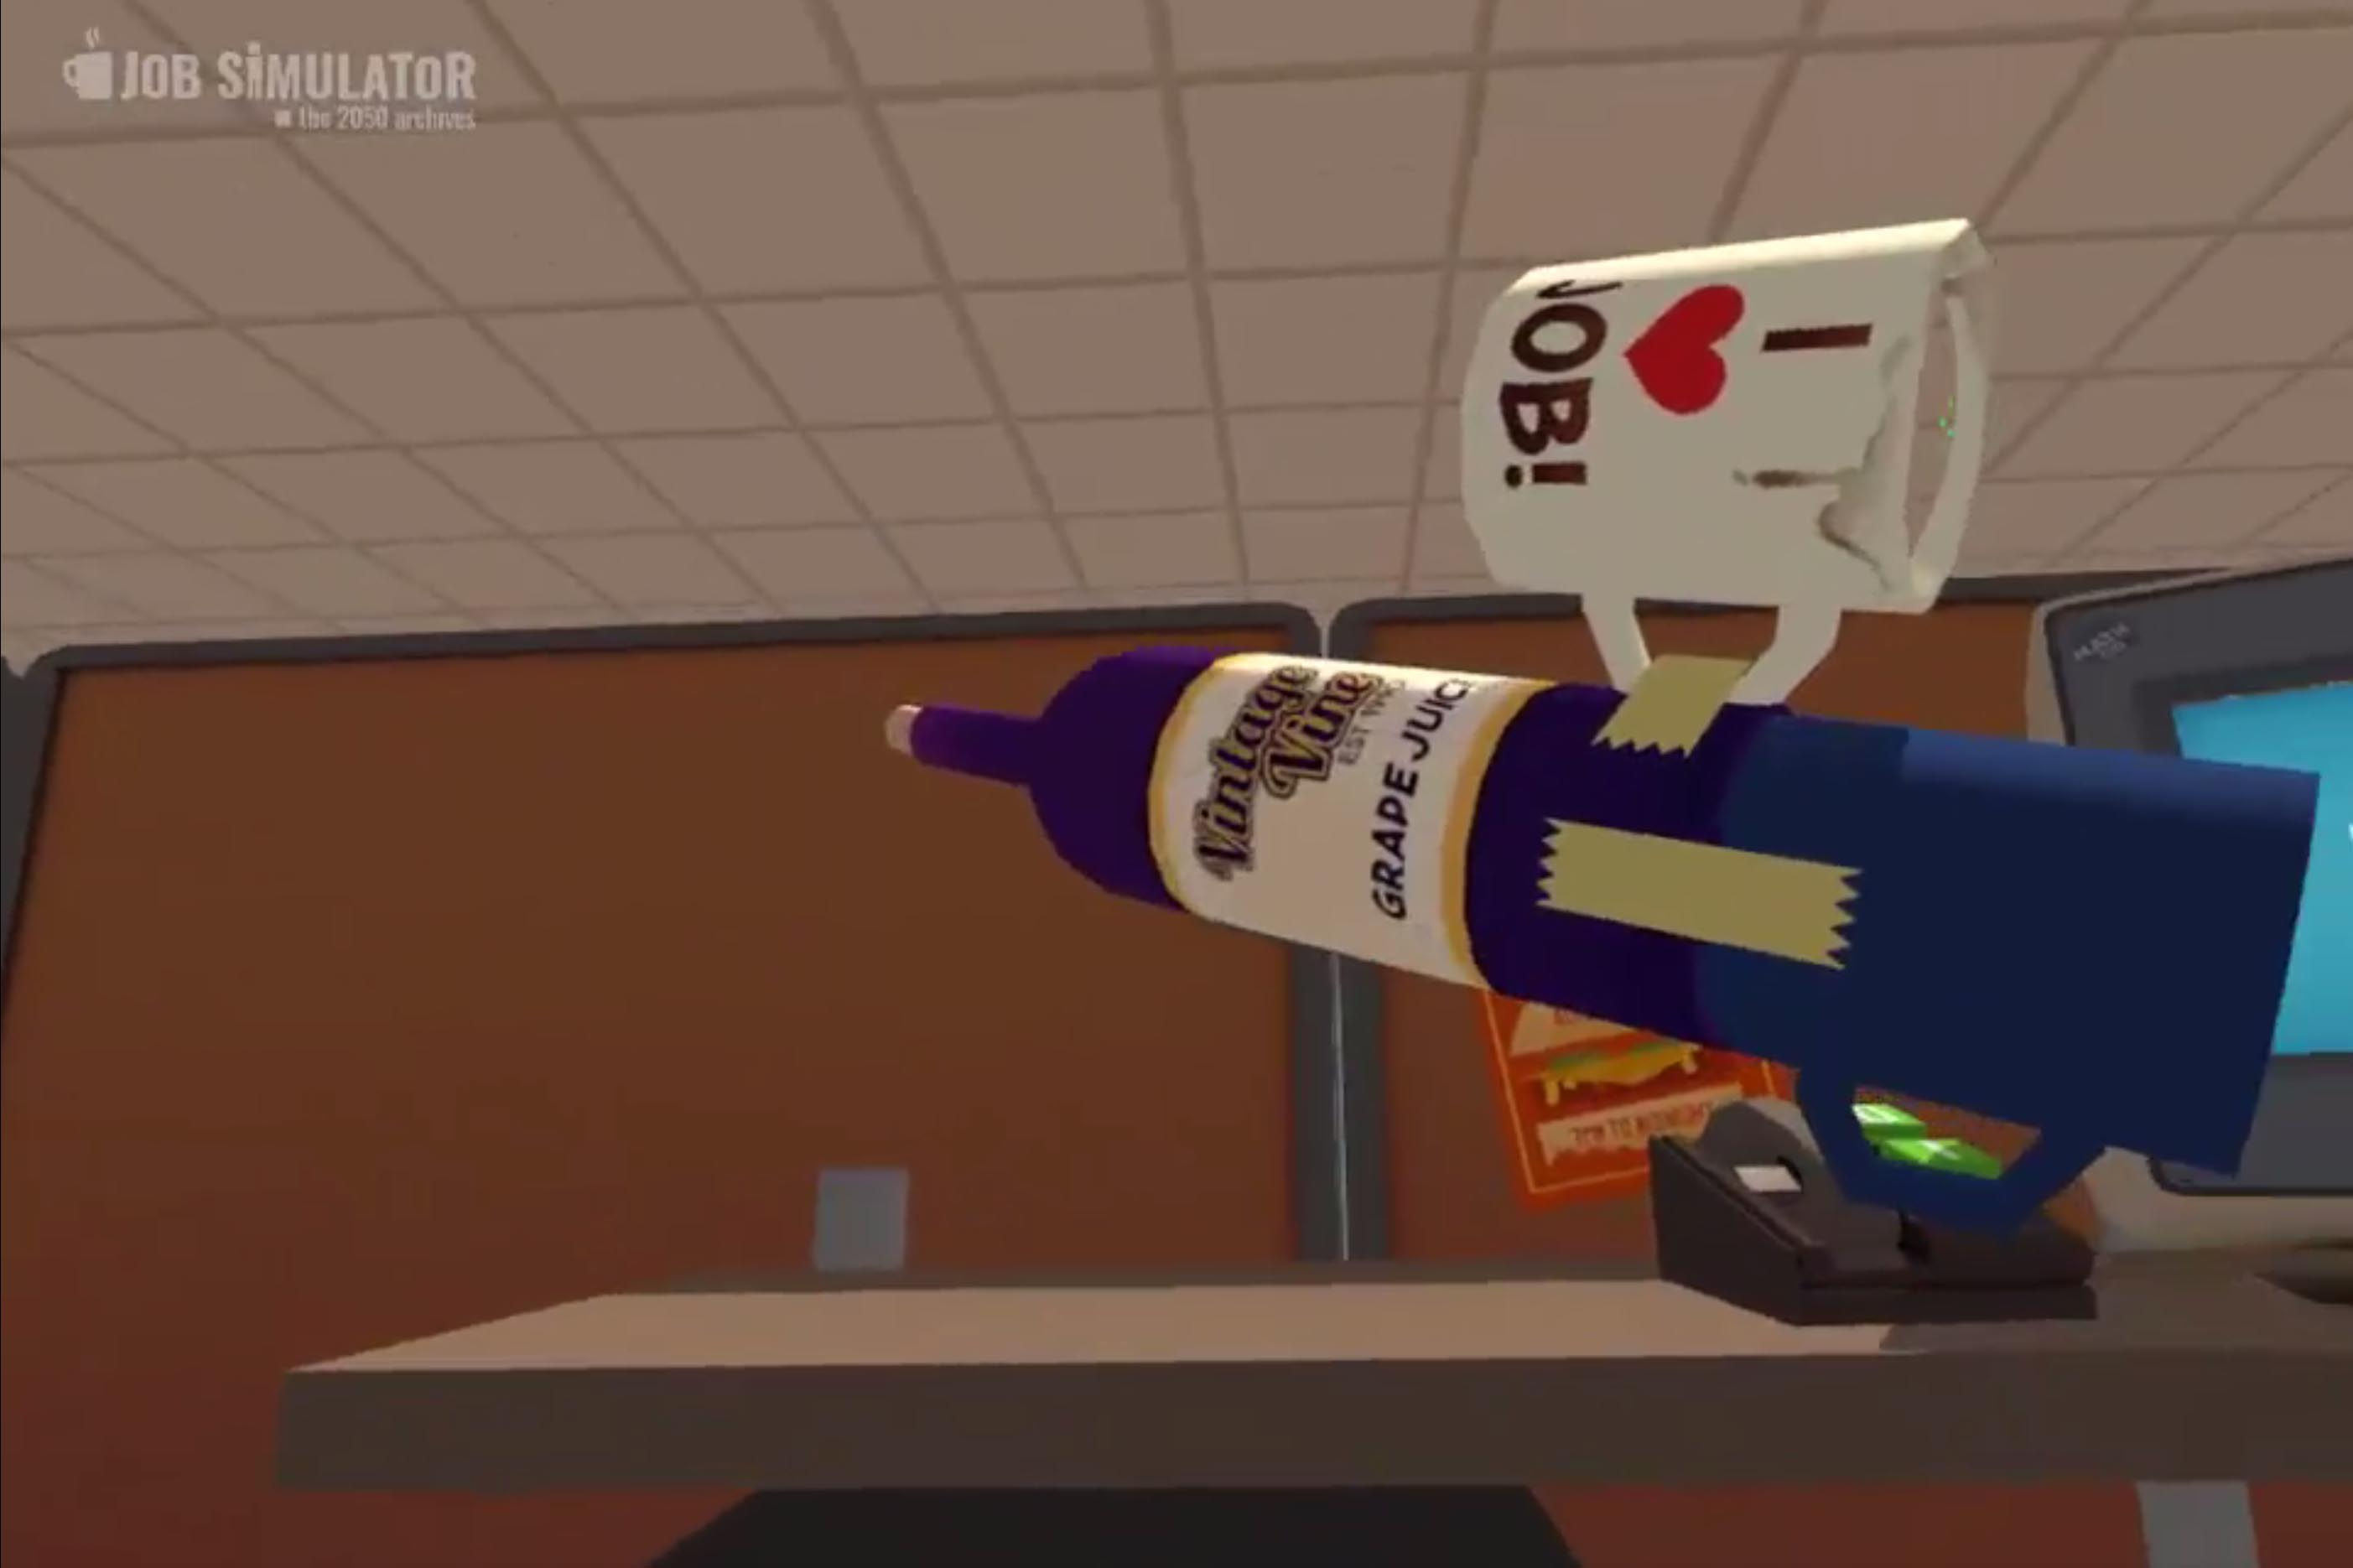 Job Simulator Turns Overwatch Into An All Out Office